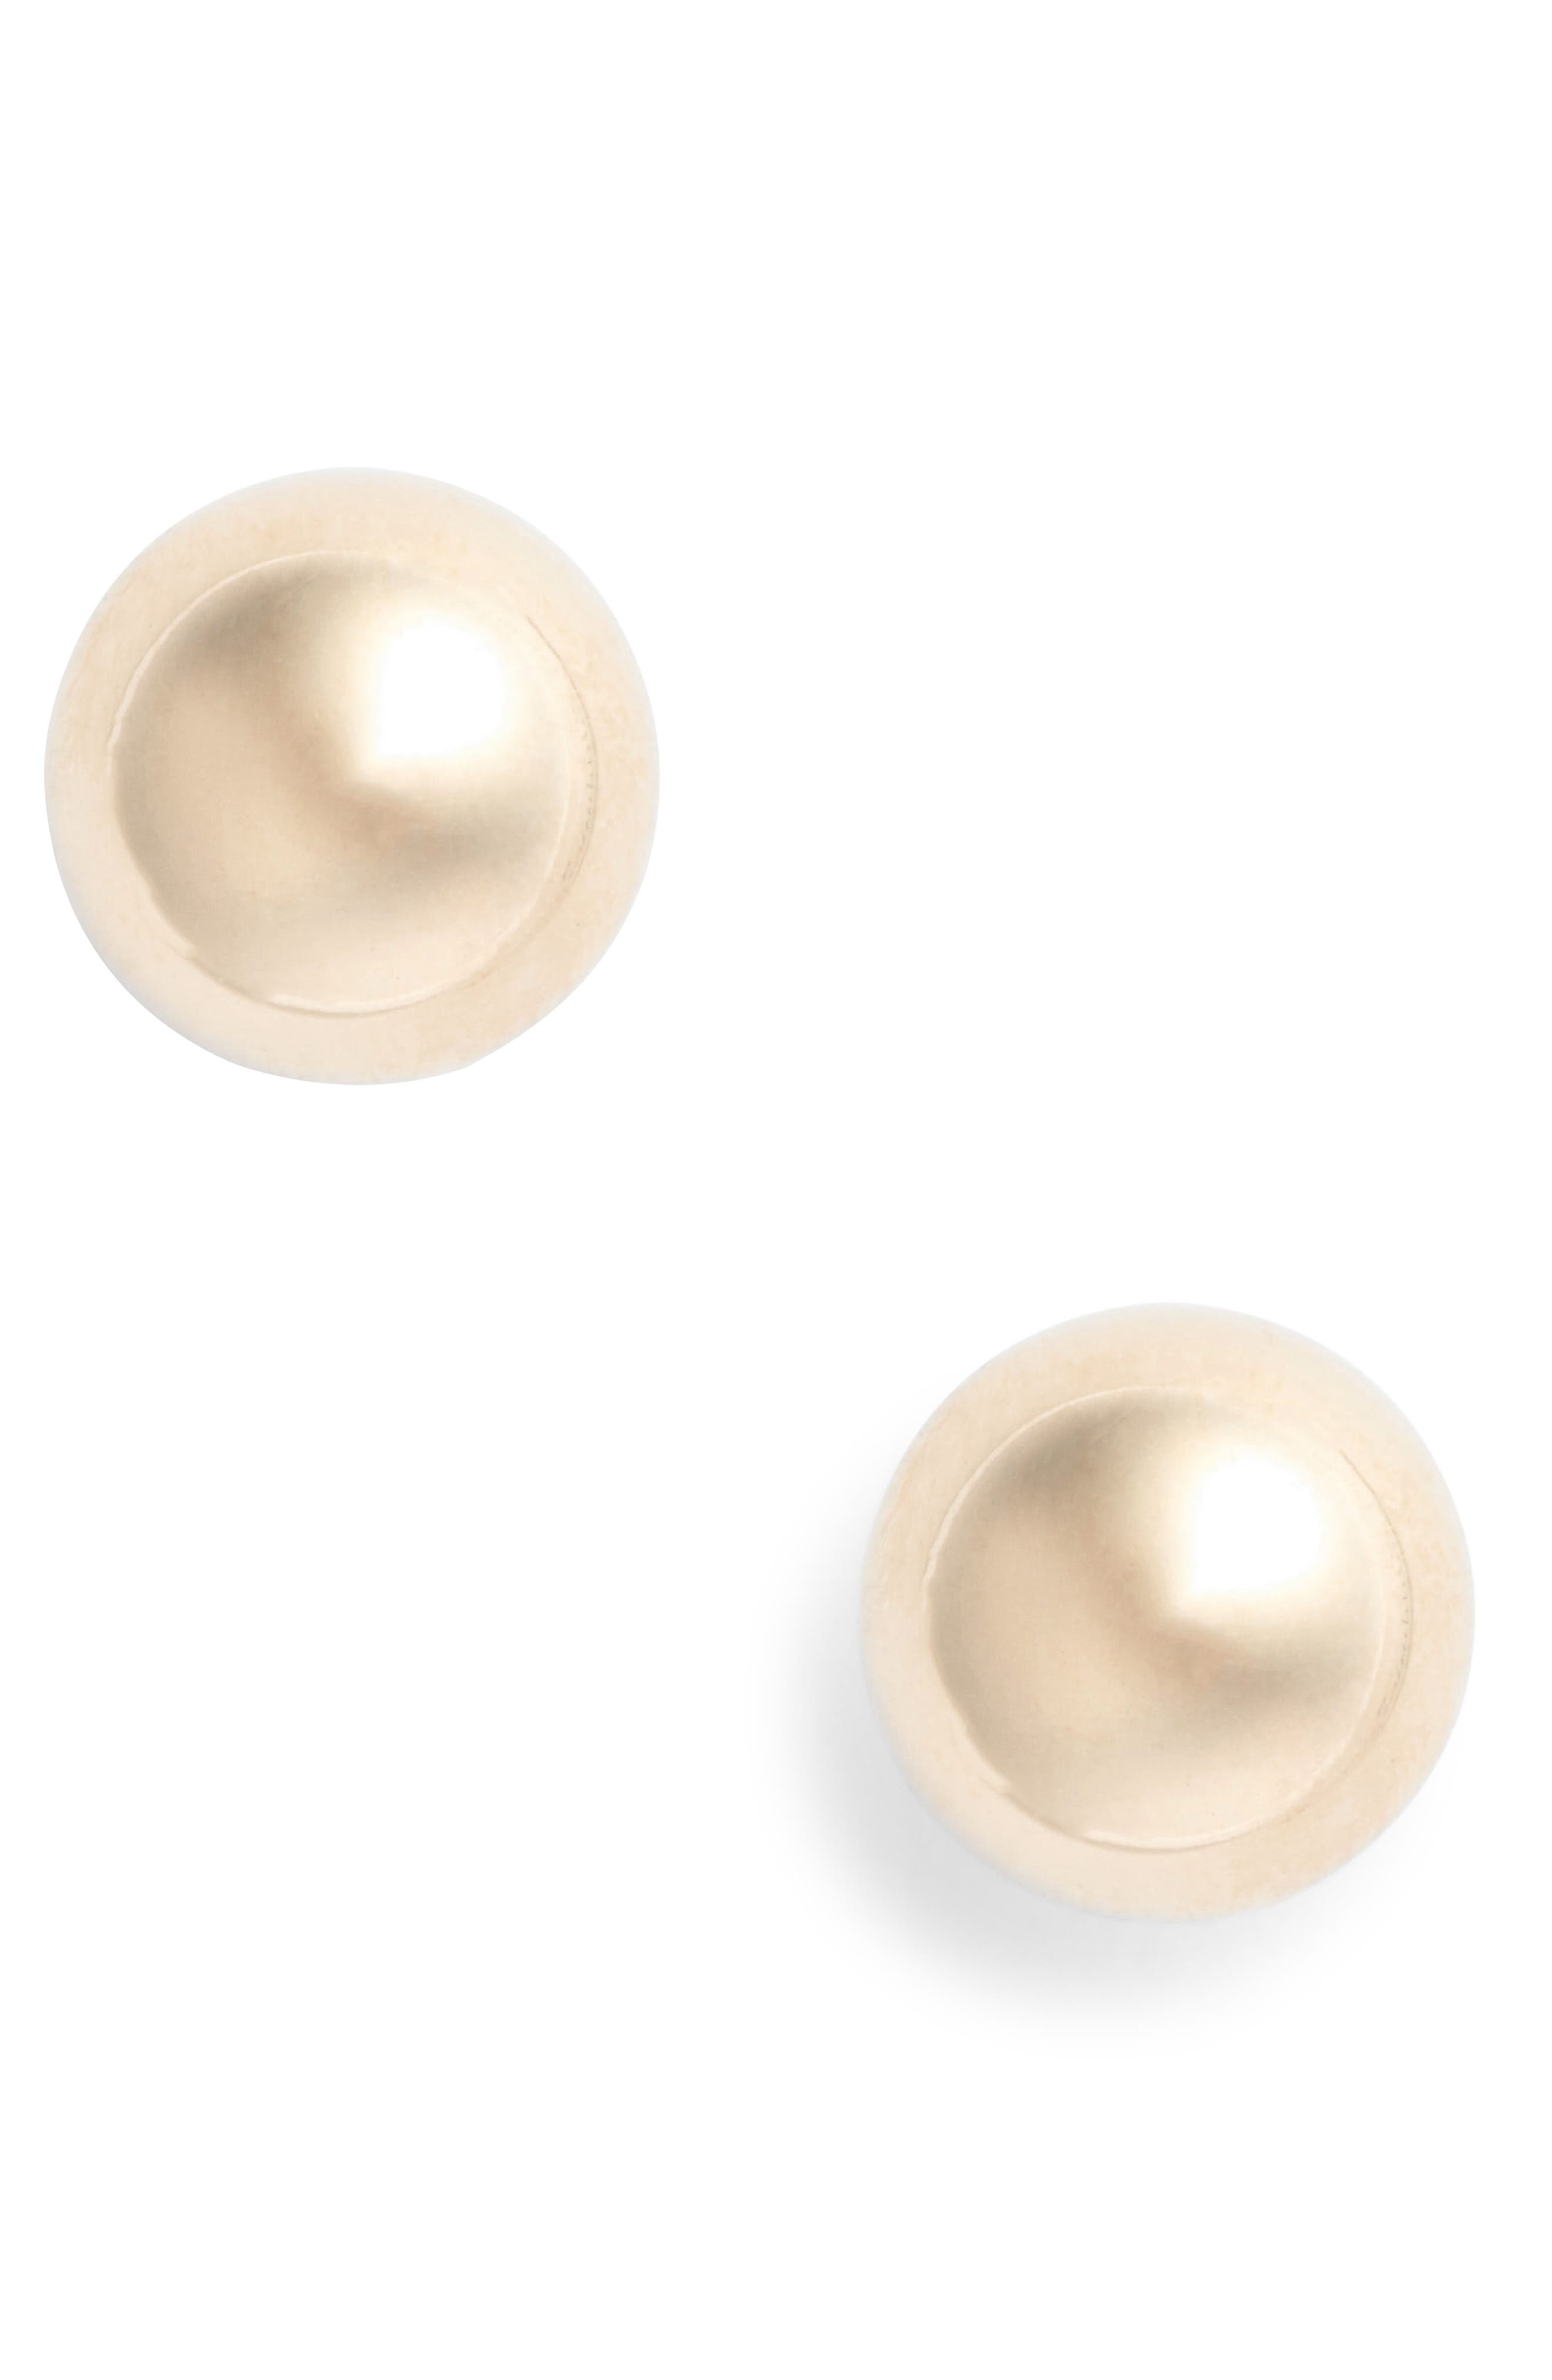 14K Ball Stud Earrings,                         Main,                         color, YELLOW GOLD